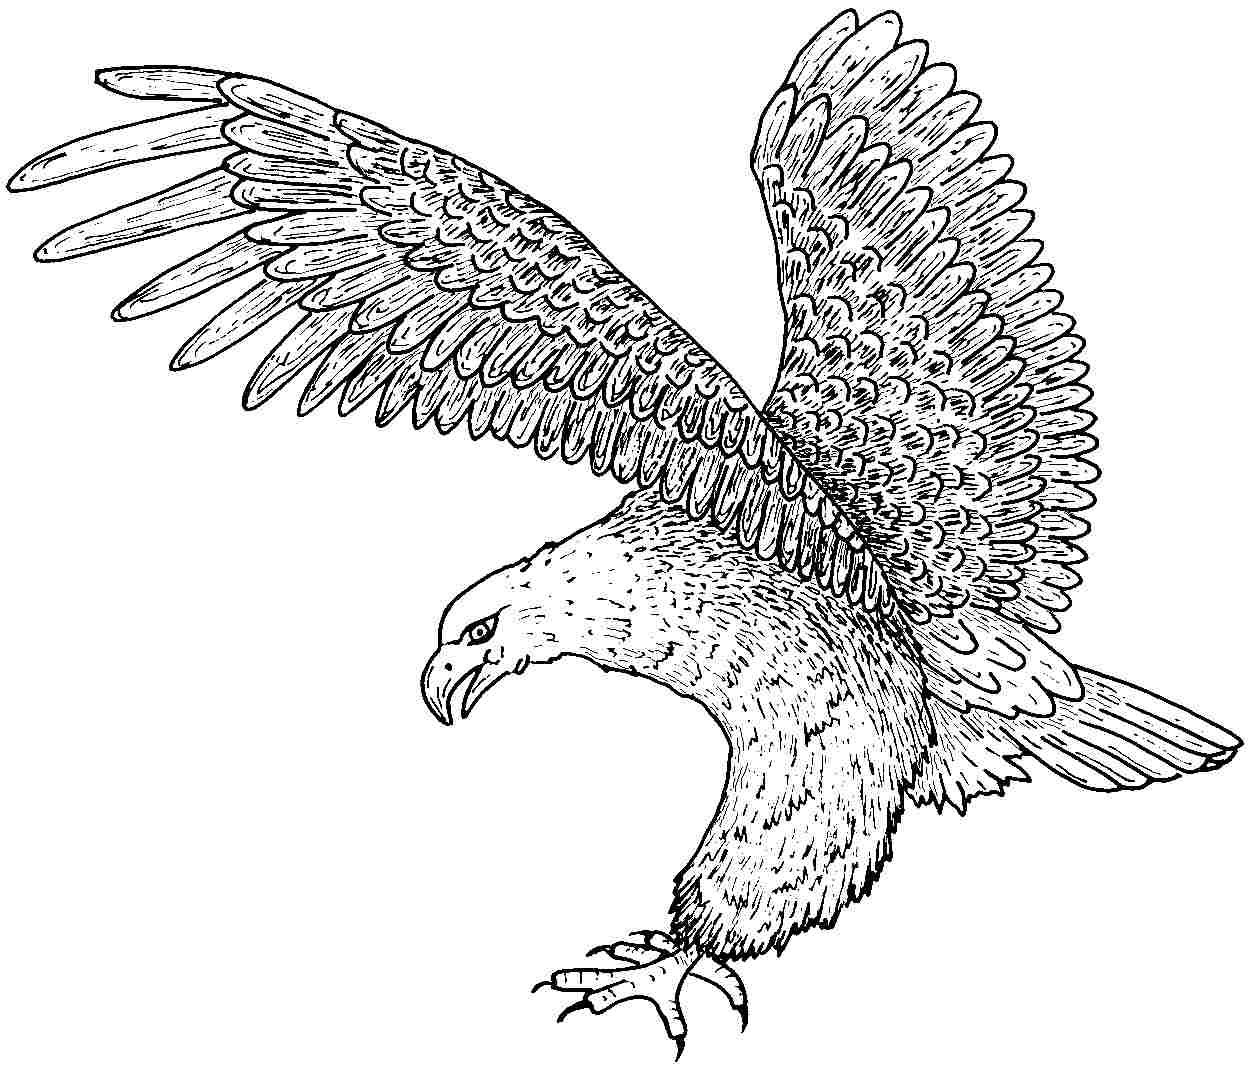 eagle coloring sheet eagle coloring pages to download and print for free coloring eagle sheet